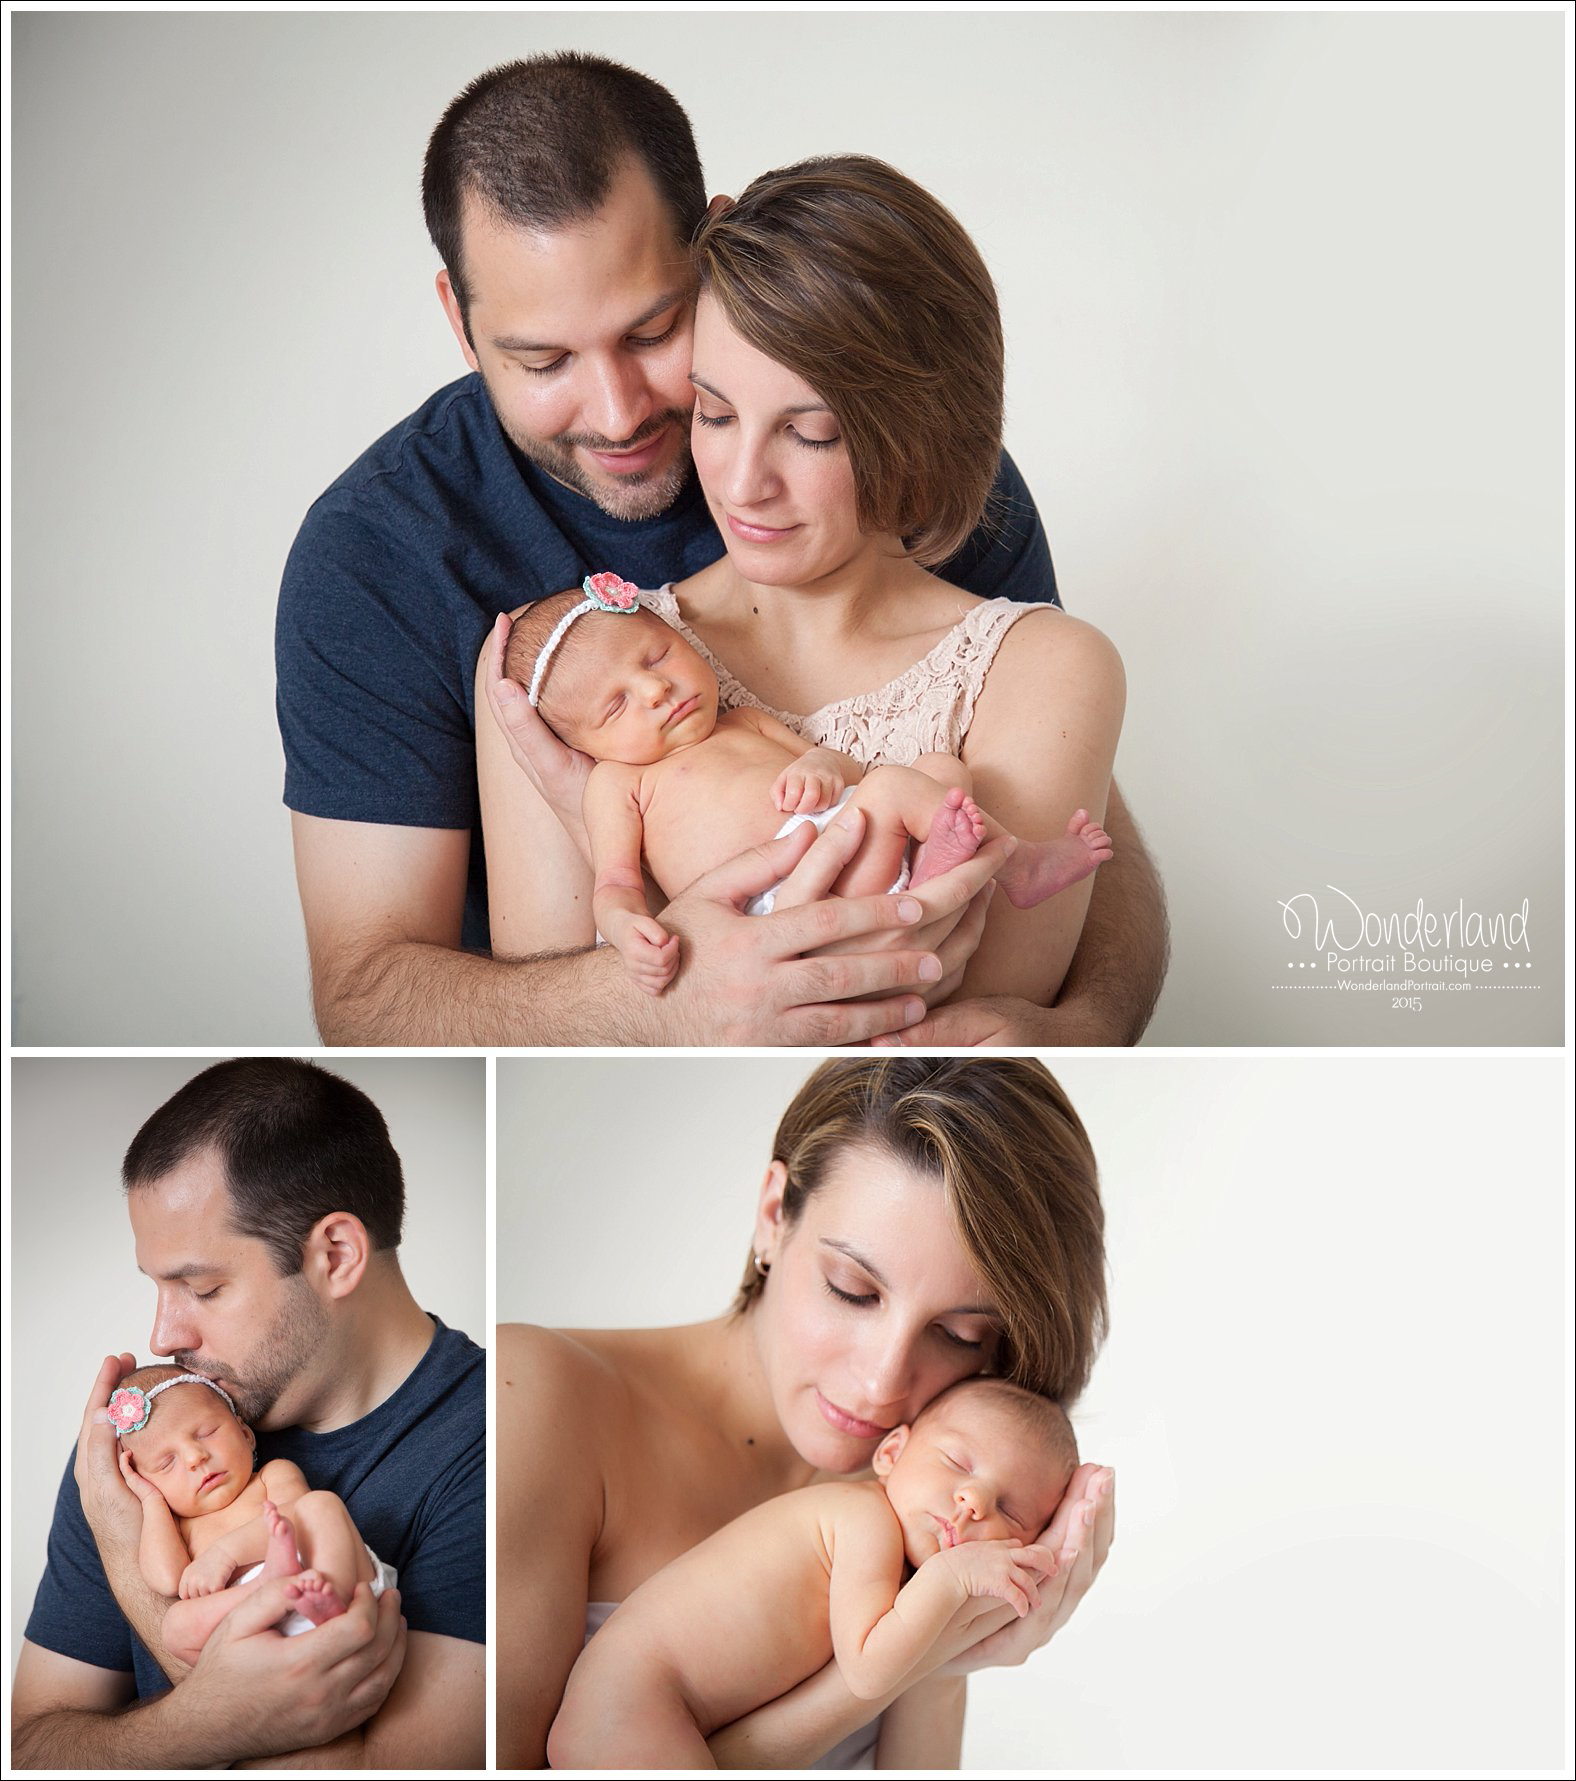 Warminster PA Newborn Photographer Baby and Parents poses | WonderlandPortrait.com